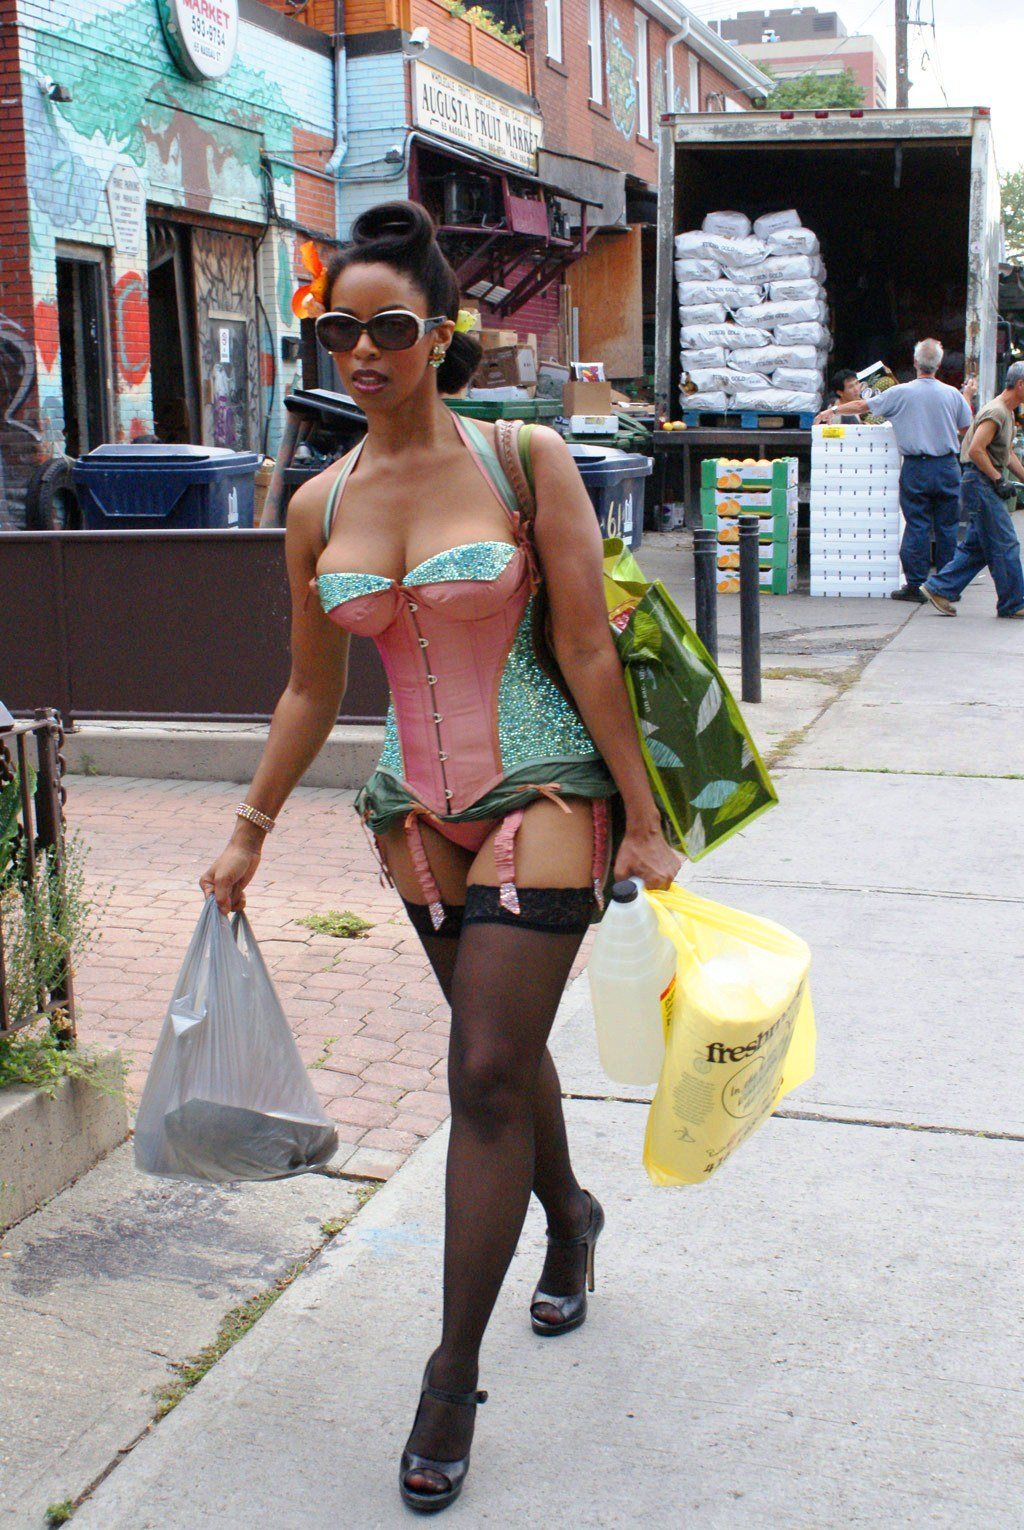 whyiloveblackgirls:  big-mr:  I guess its just another day doing the shopping.  http://www.whyiloveblackgirls.tumblr.com/archive